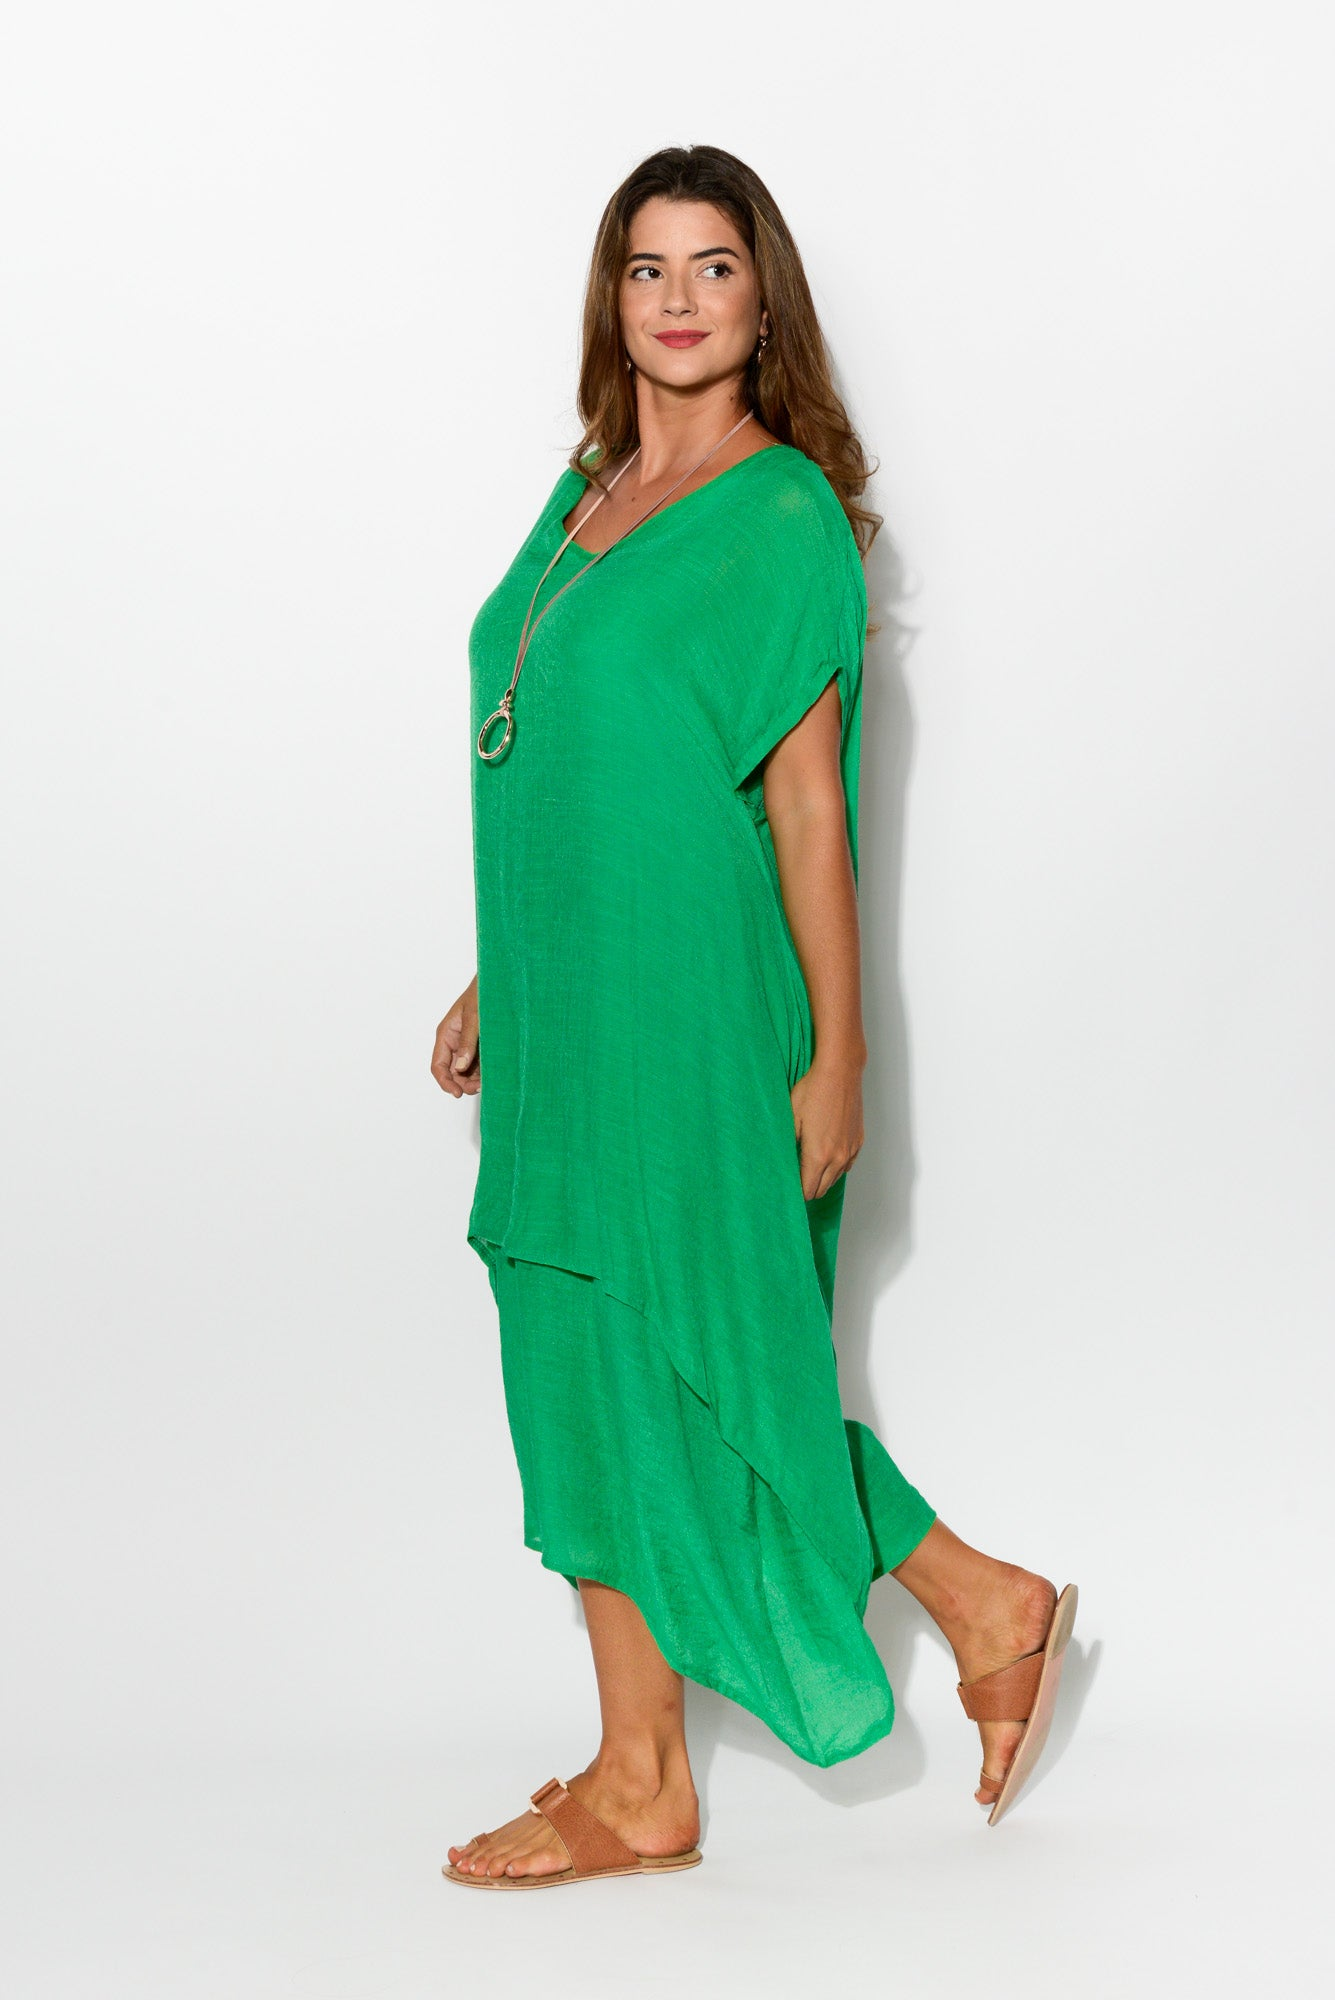 Green Tiered Cotton Dress - Blue Bungalow